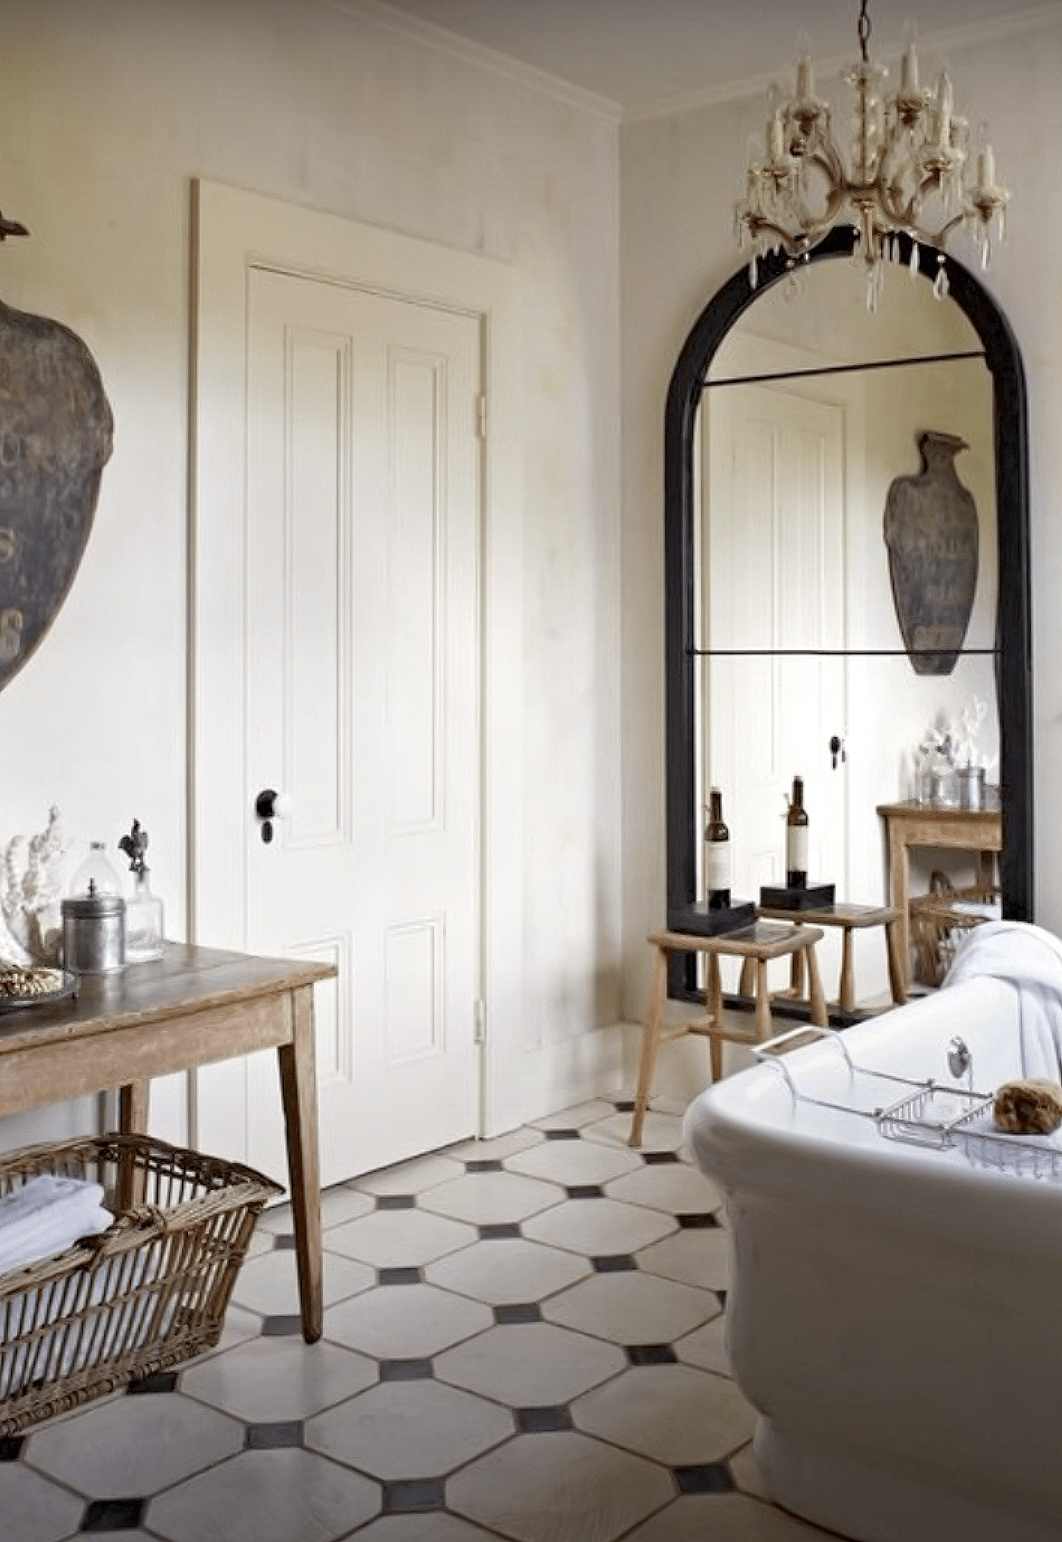 French Country Fridays 238: Savoring the Charm of French Inspired Decor